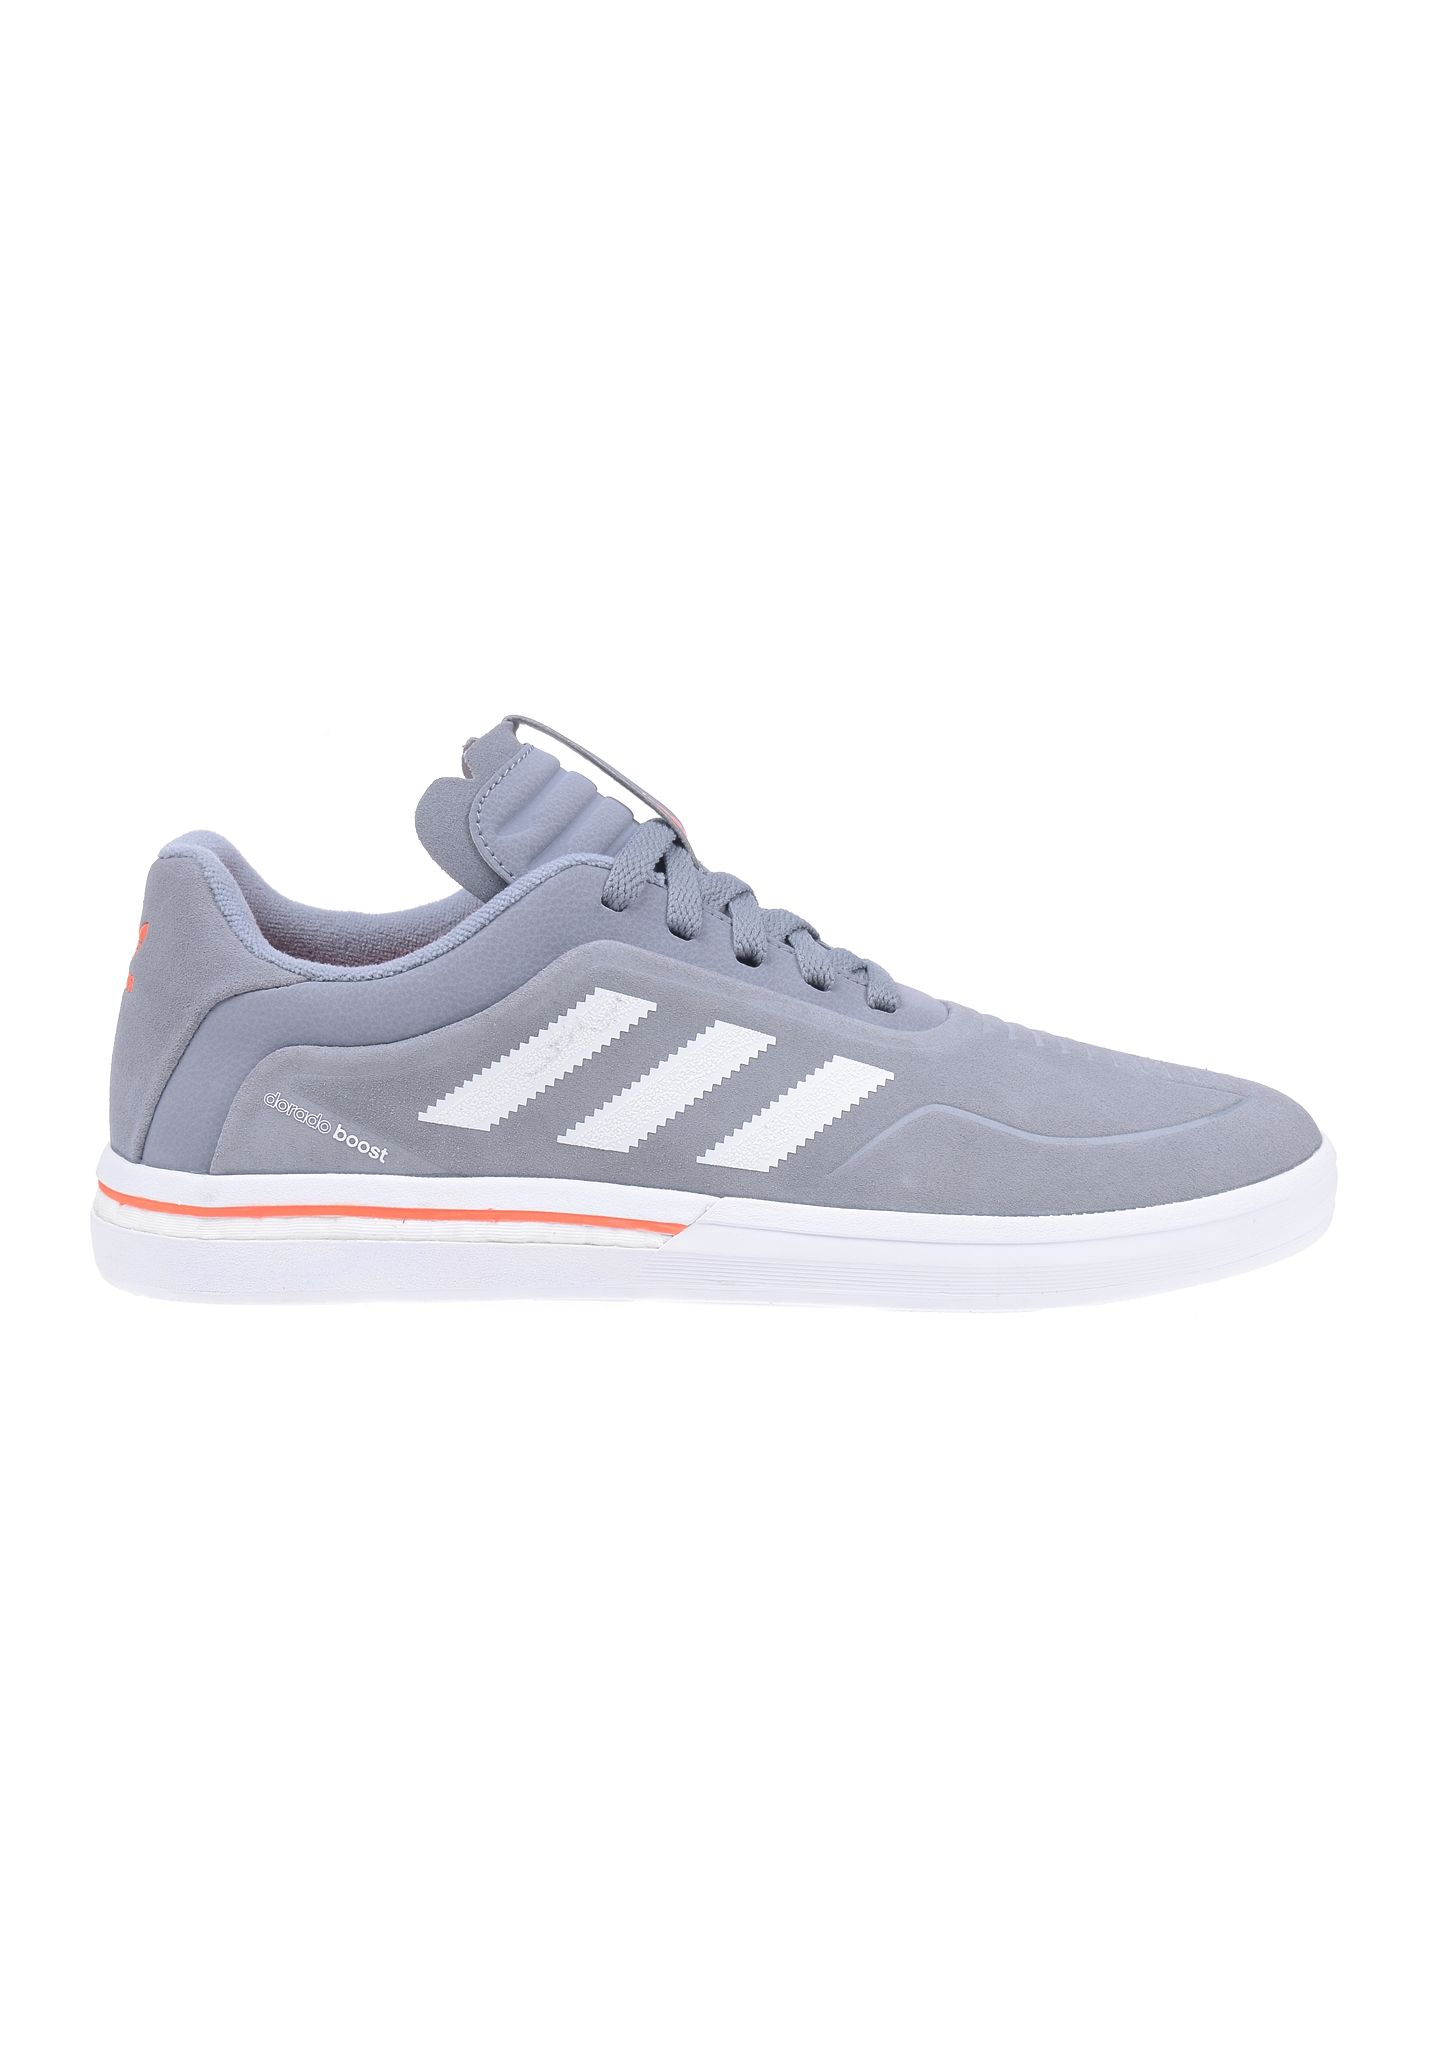 best sneakers cf102 b3769 ADIDAS ORIGINALS Dorado ADV Boost Skateboarding - Sneakers for Men - Grey -  Planet Sports